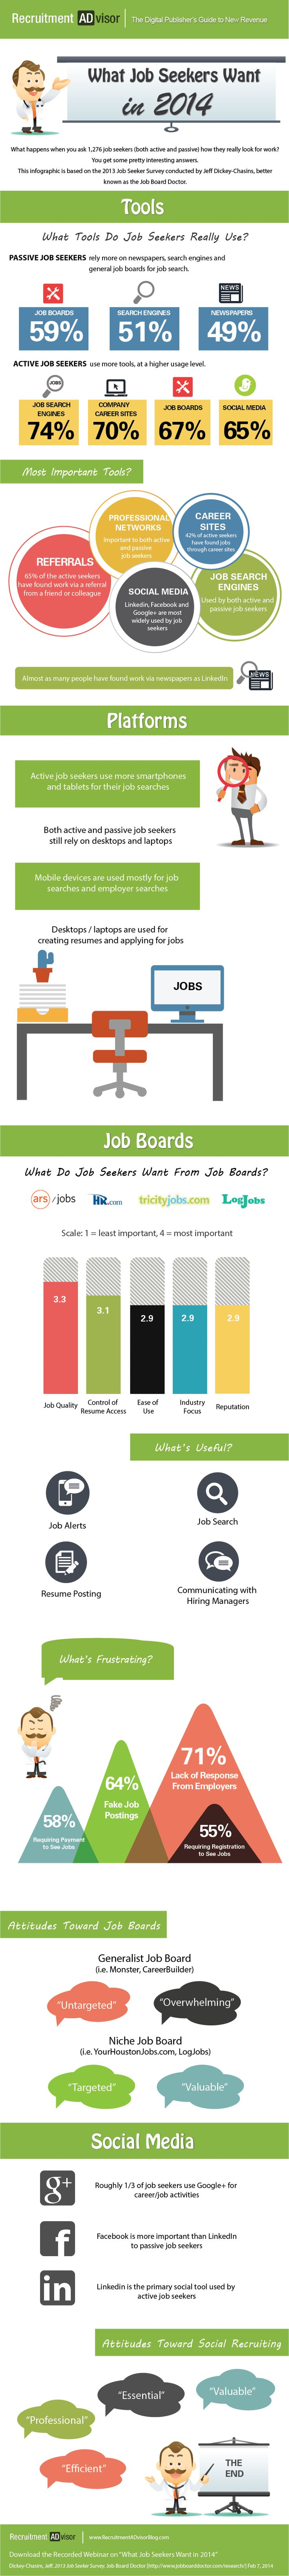 best ideas about job seekers job search tips what job seekers want in 2014 infographic recruitment advisor